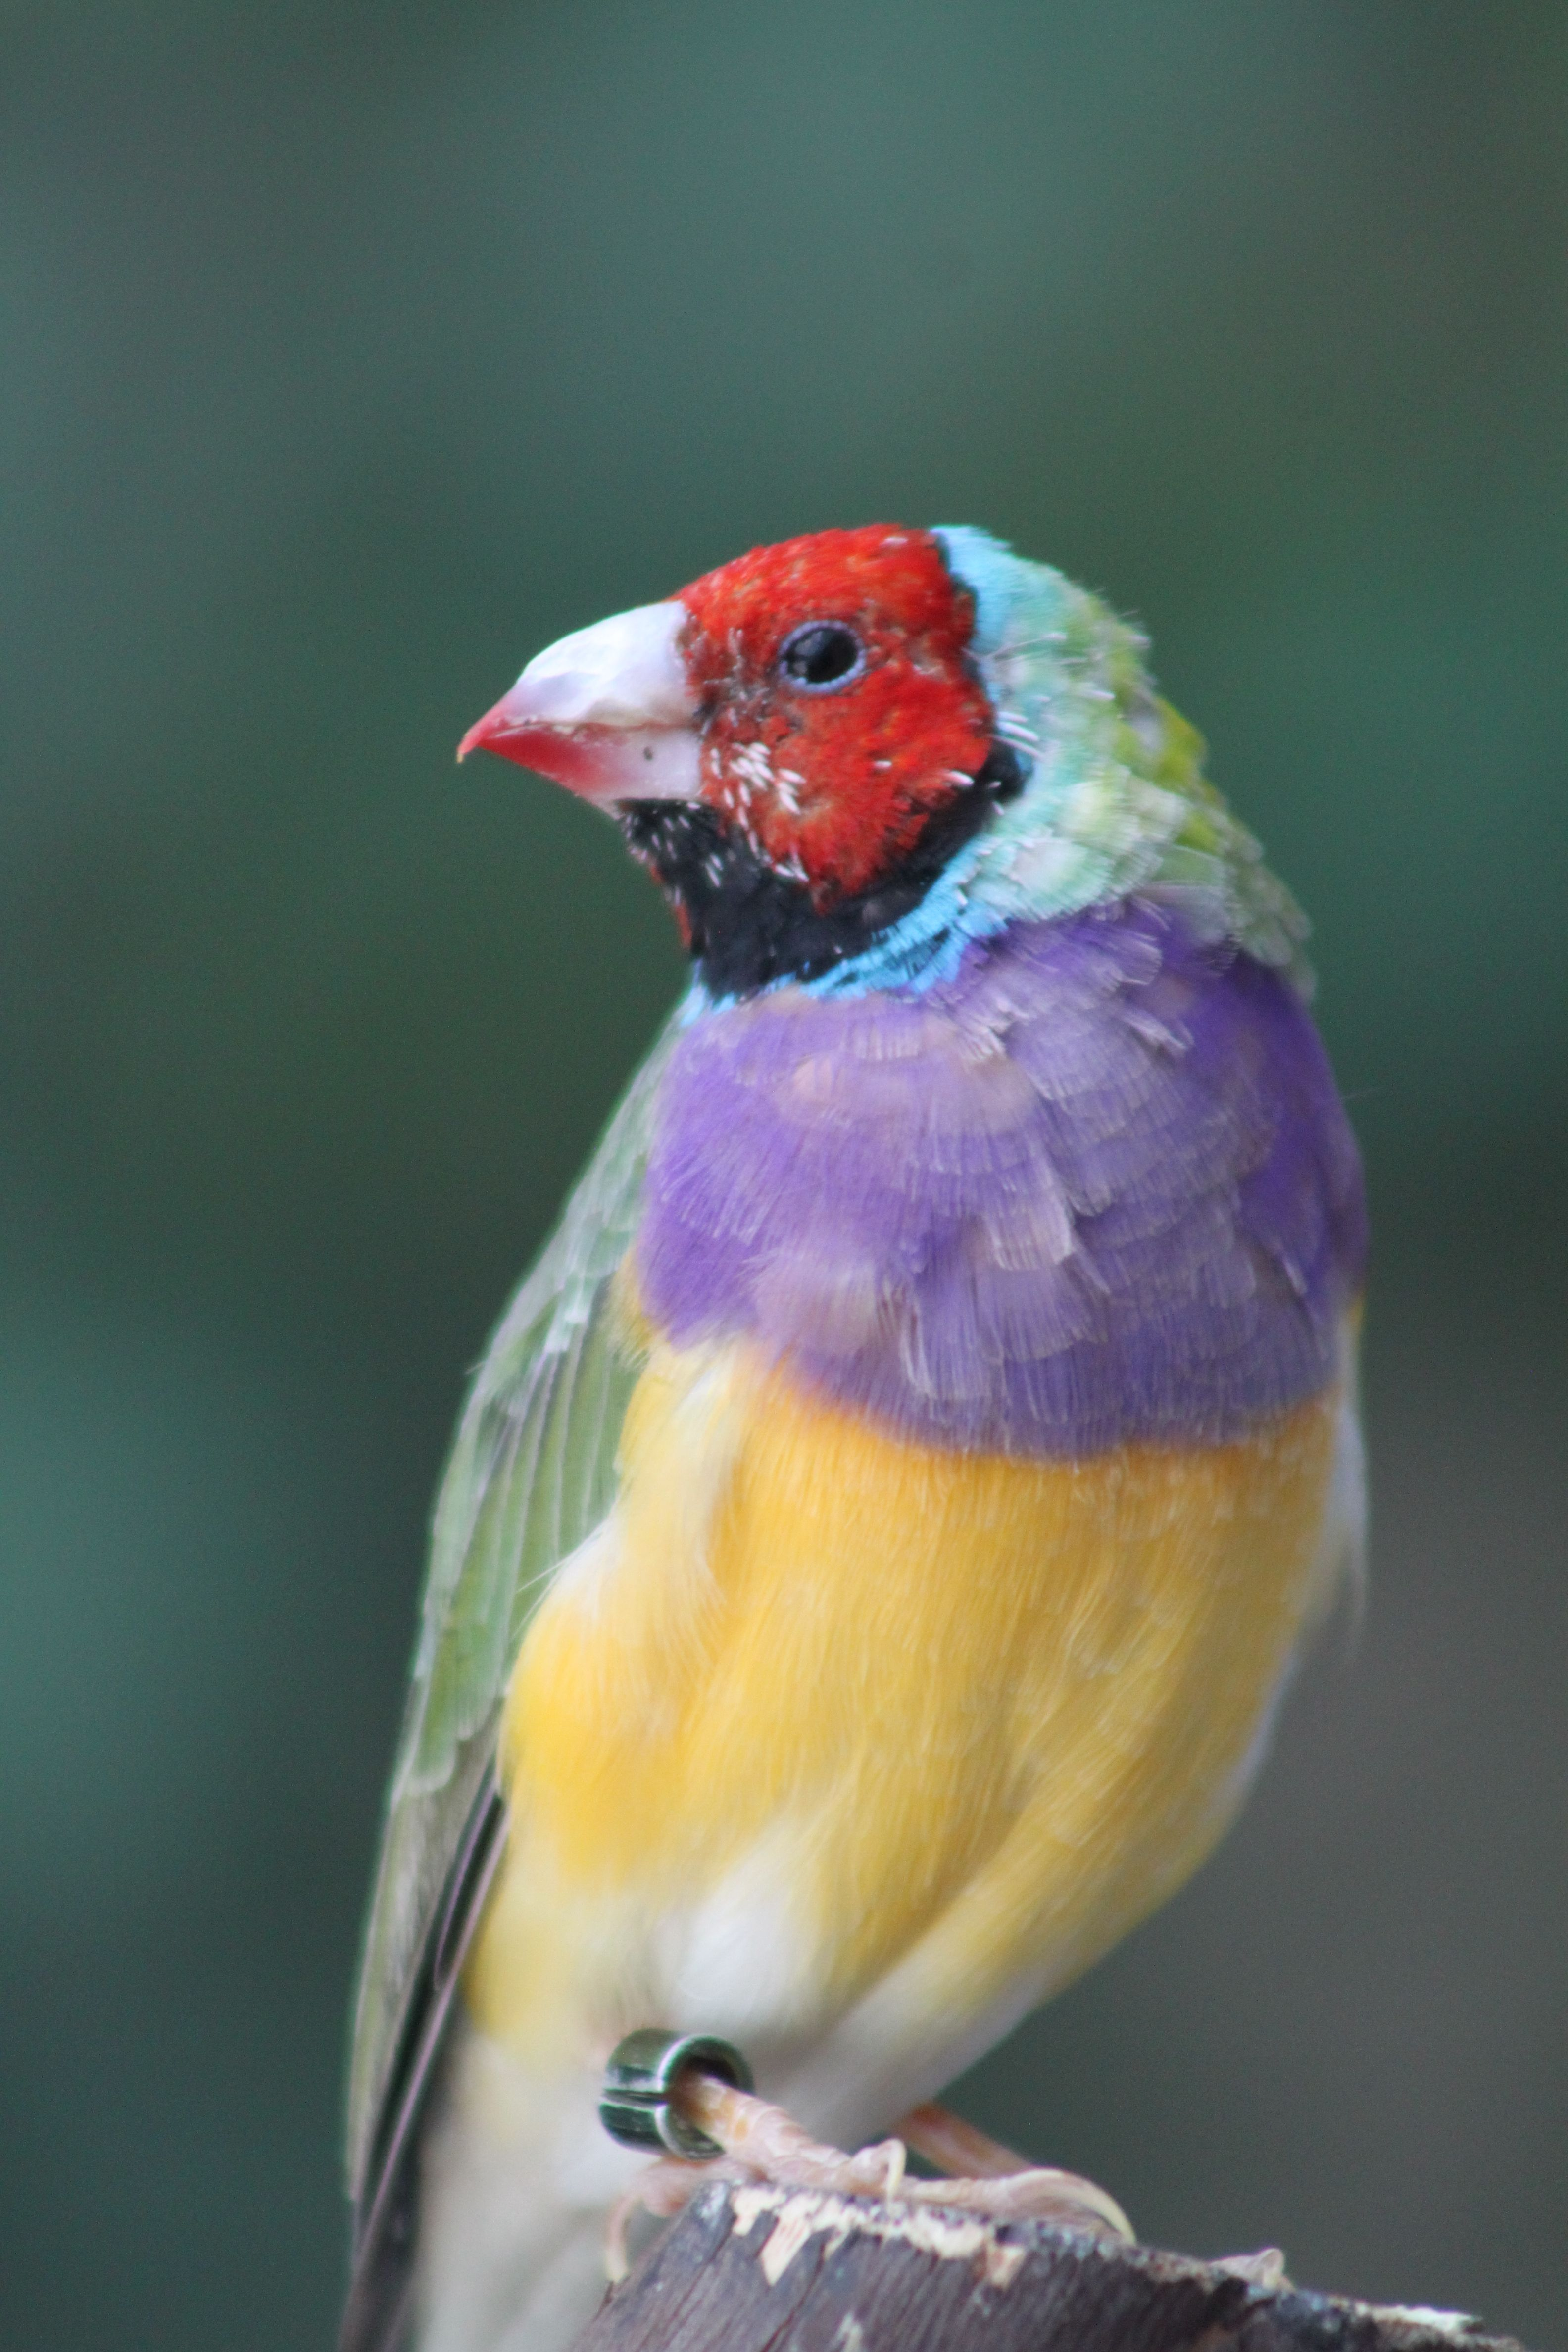 Gouldian Finch - taken at the National Aviary in Pittsburgh